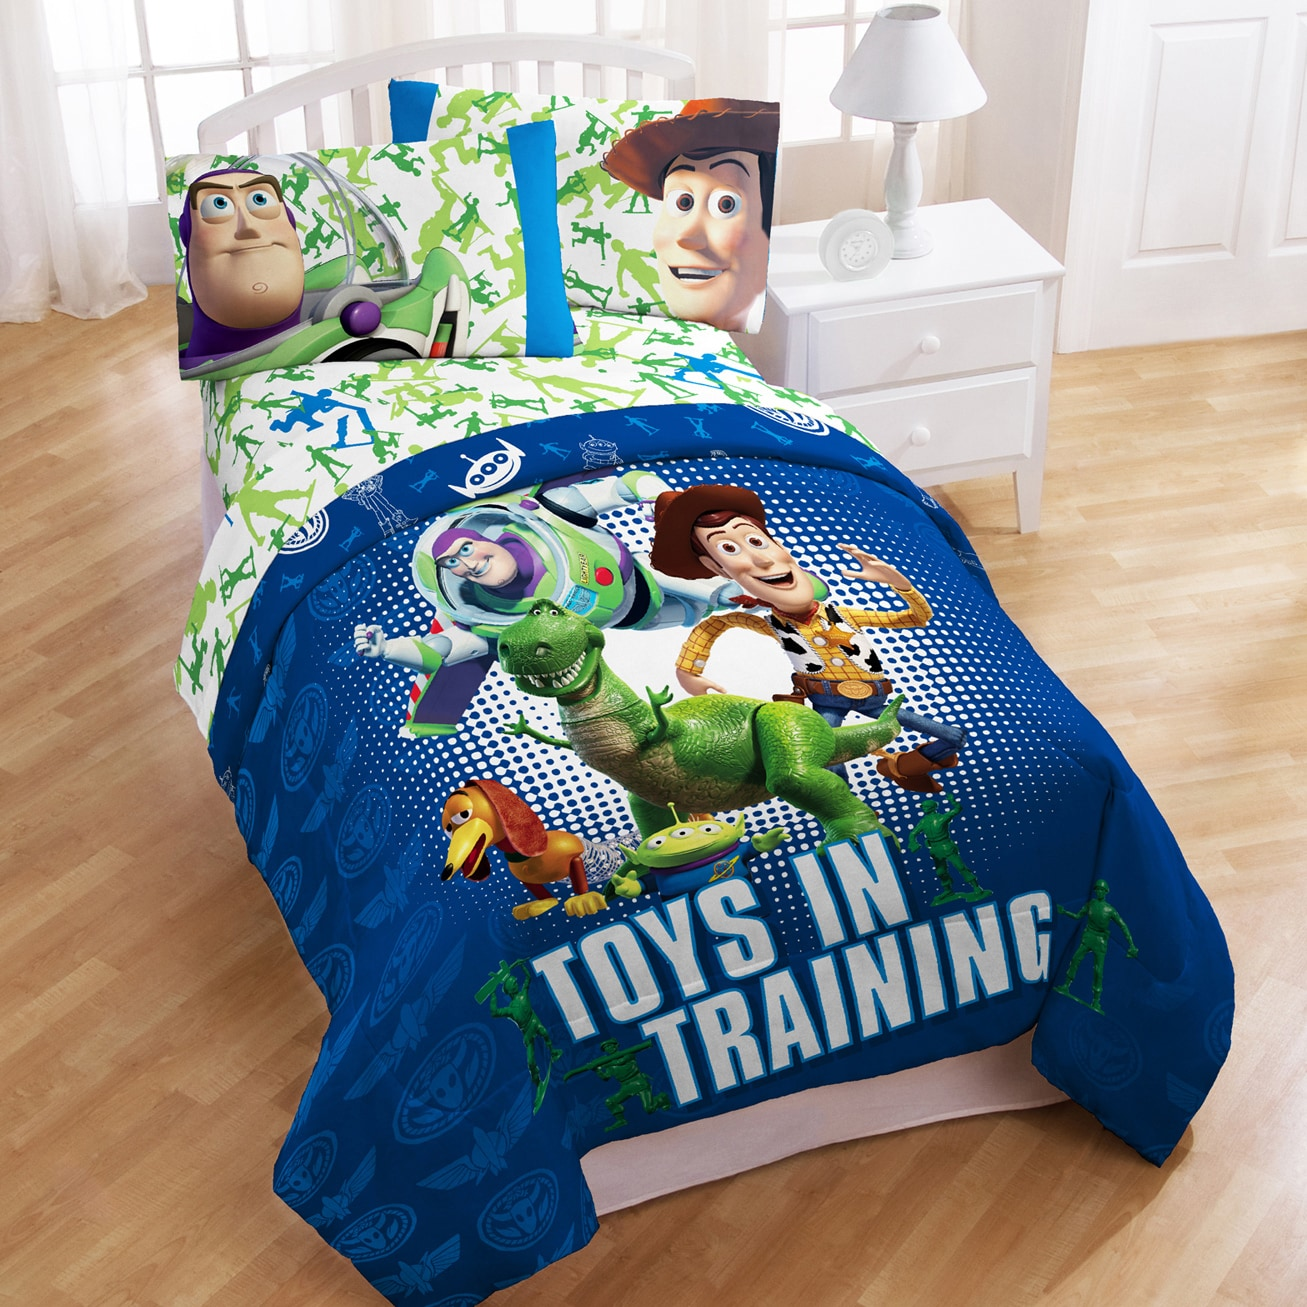 Shop Disney Pixar Toy Story Toys In Training 4 Piece Bed In A Bag With Sheet Set Overstock 7401775